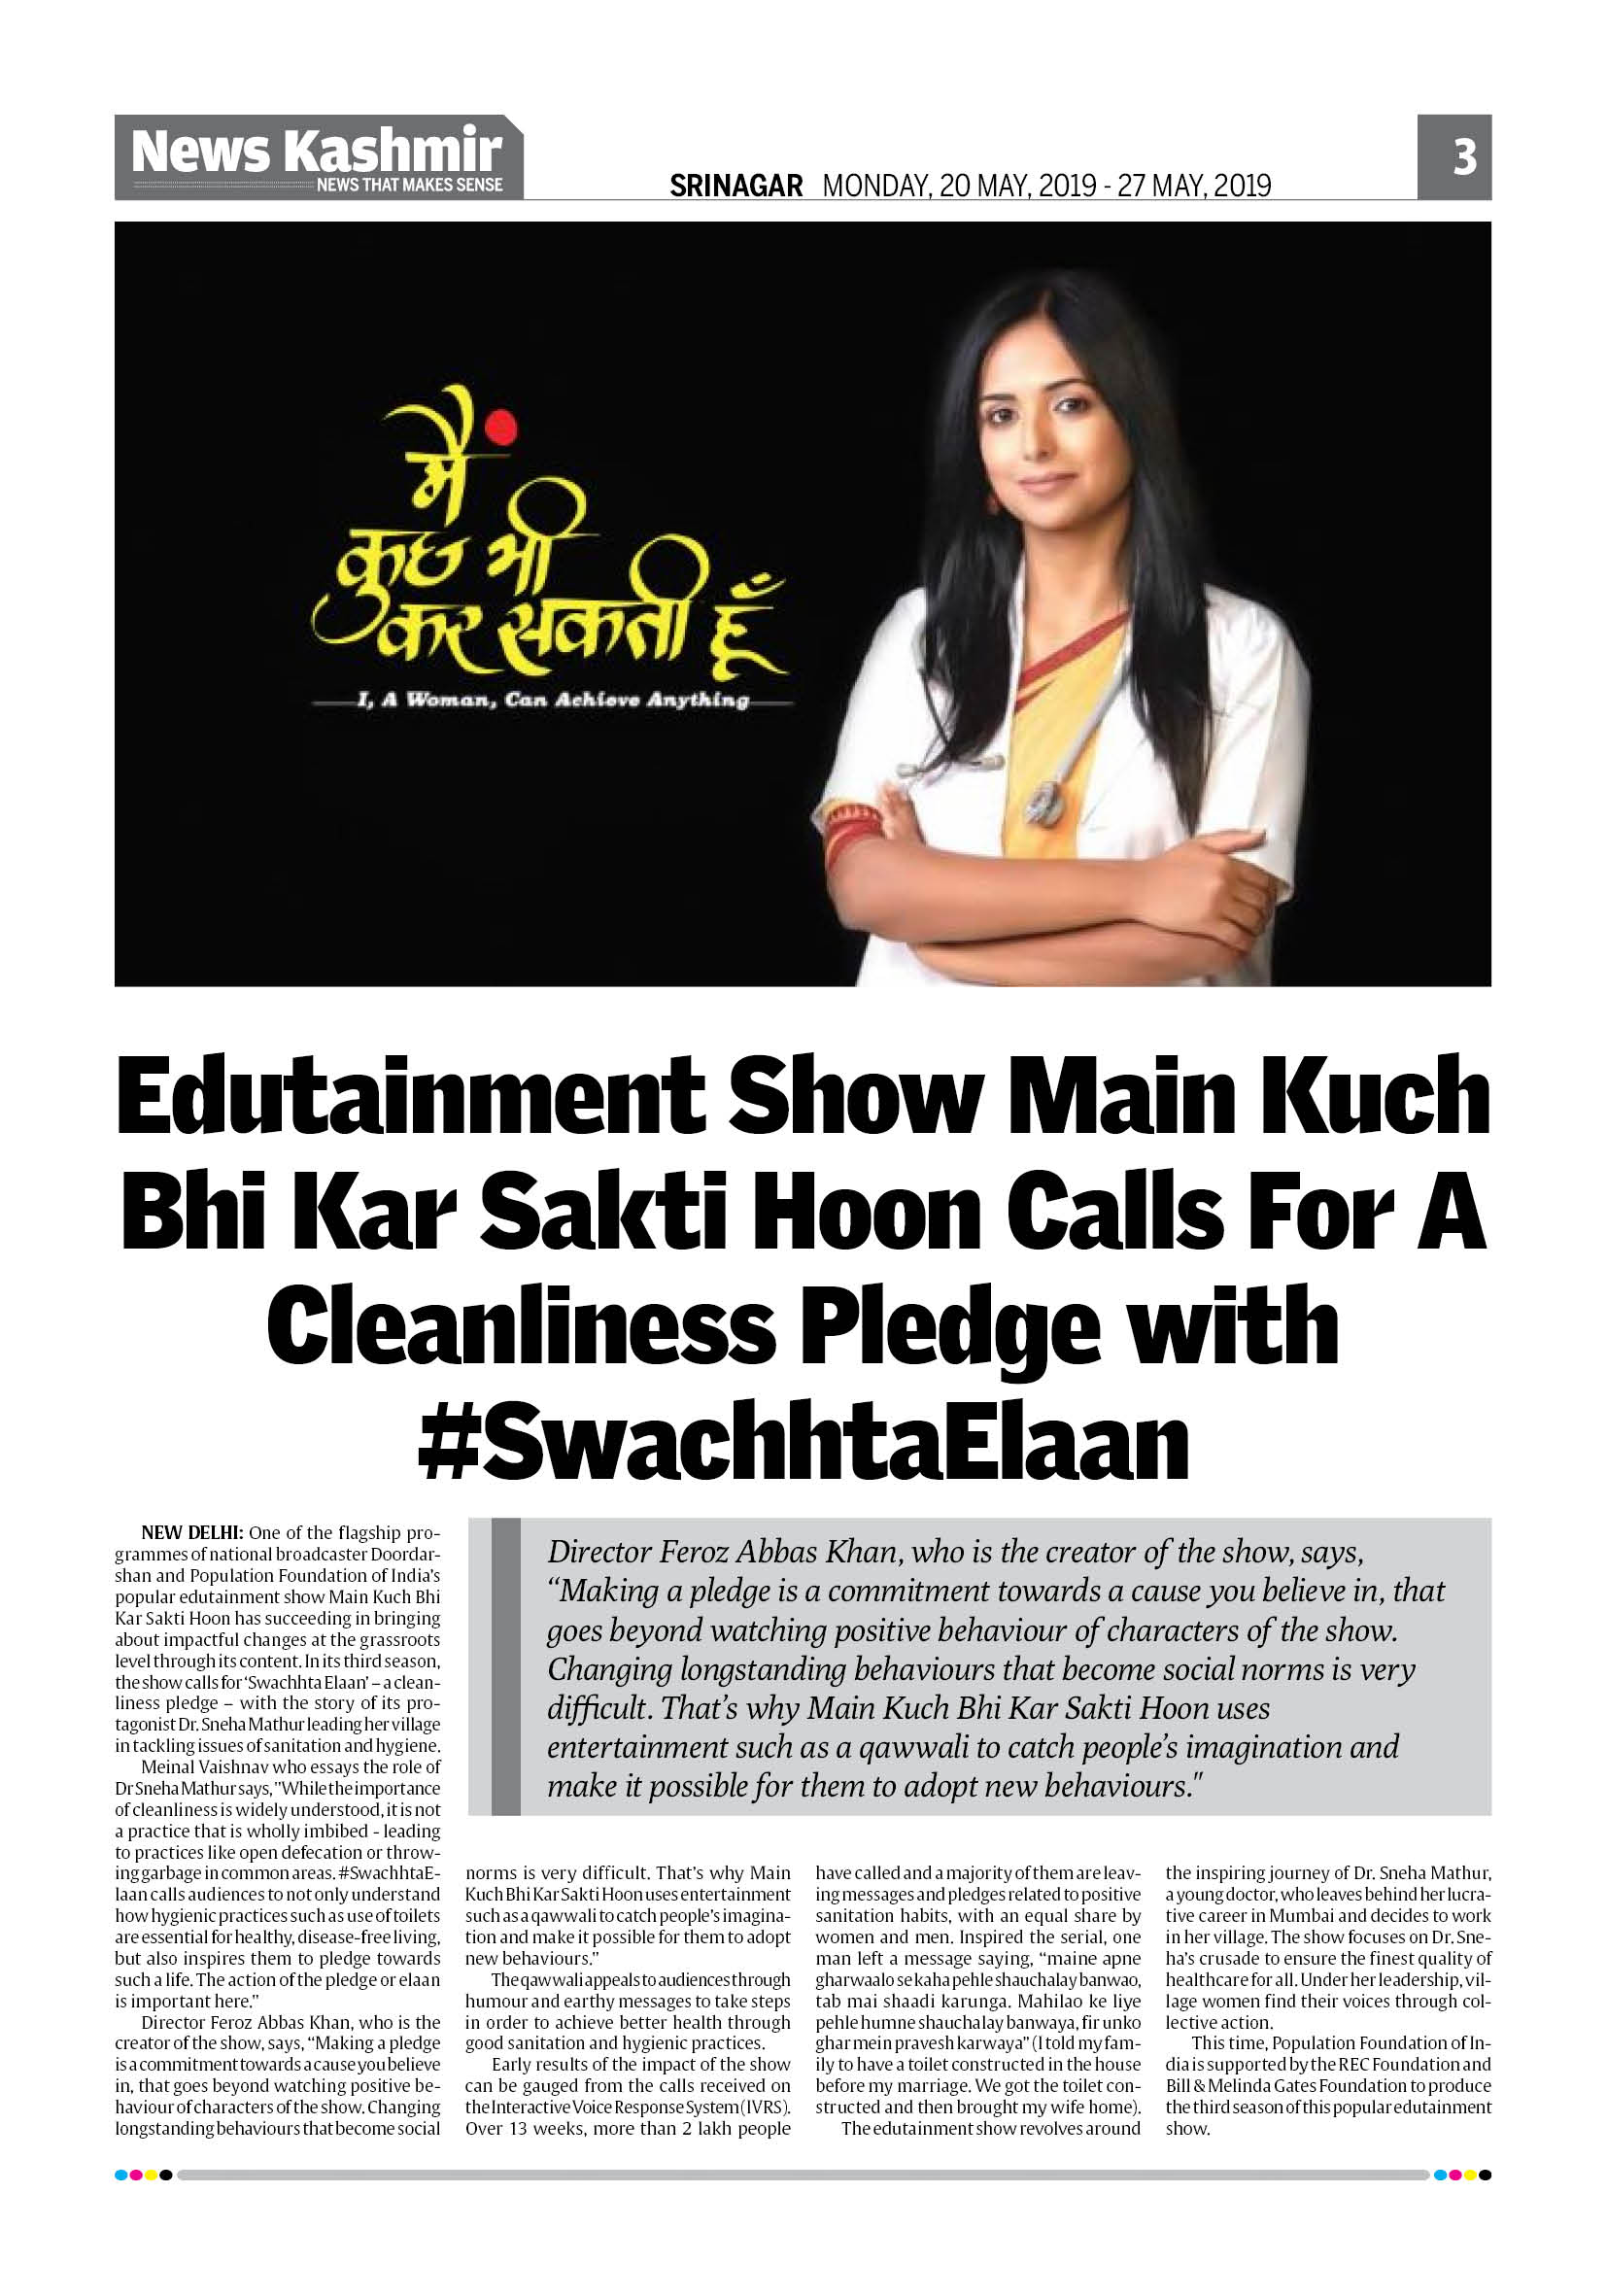 Edutainment Show Main Kuch Bhi Kar Sakti Hoon Calls For A Cleanliness Pledge with #SwachhtaElaan